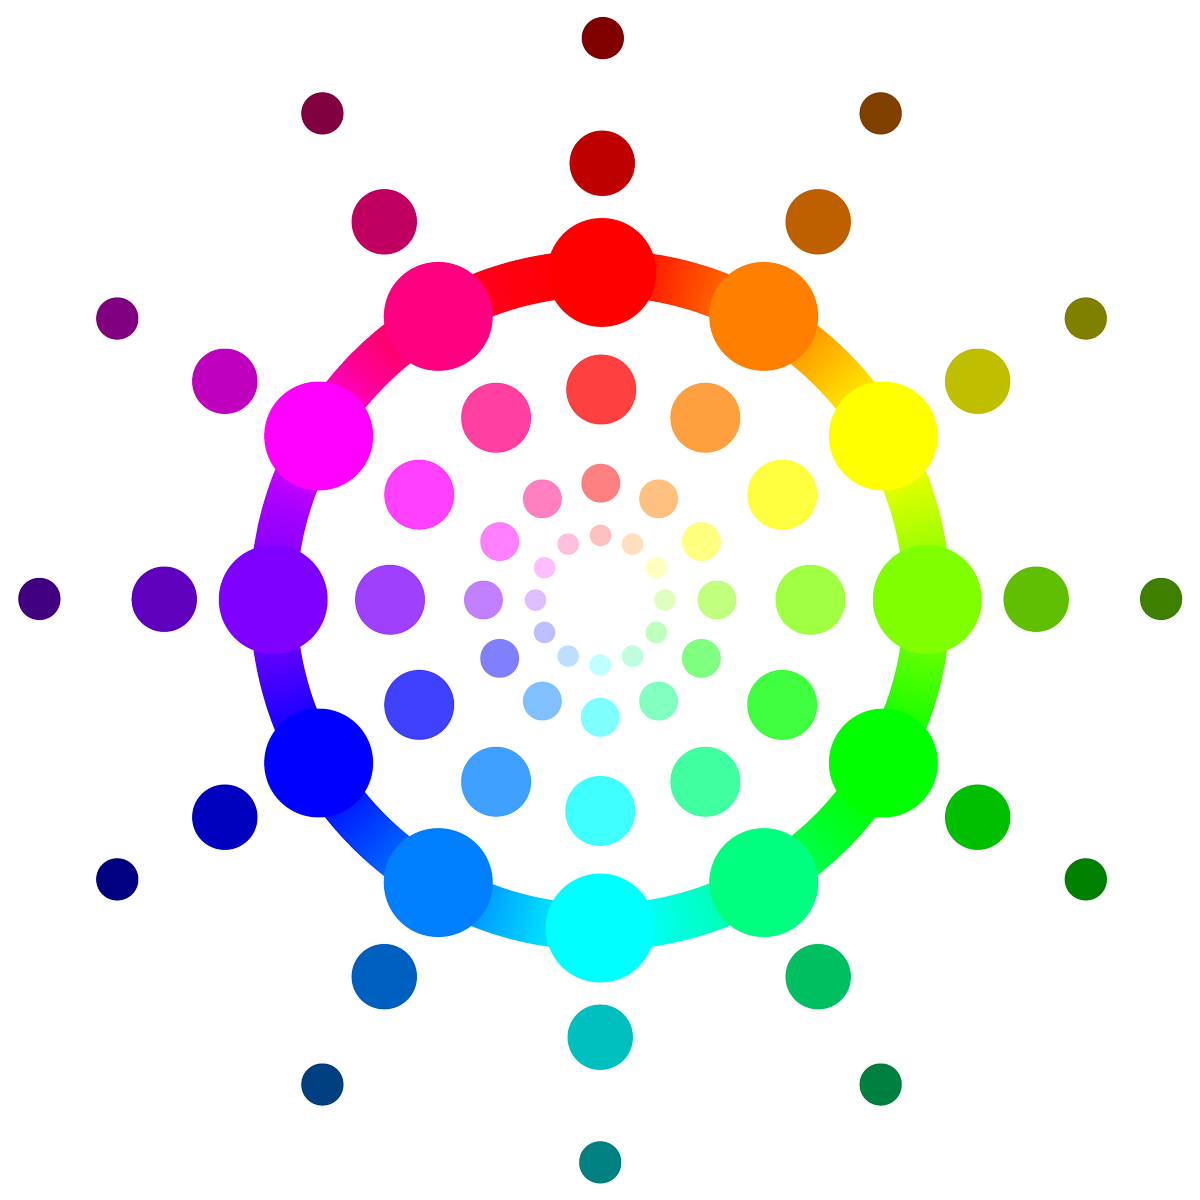 Rgb Color Wheel Dot Circle 12 Hour With 2 Shades And 2 Tints